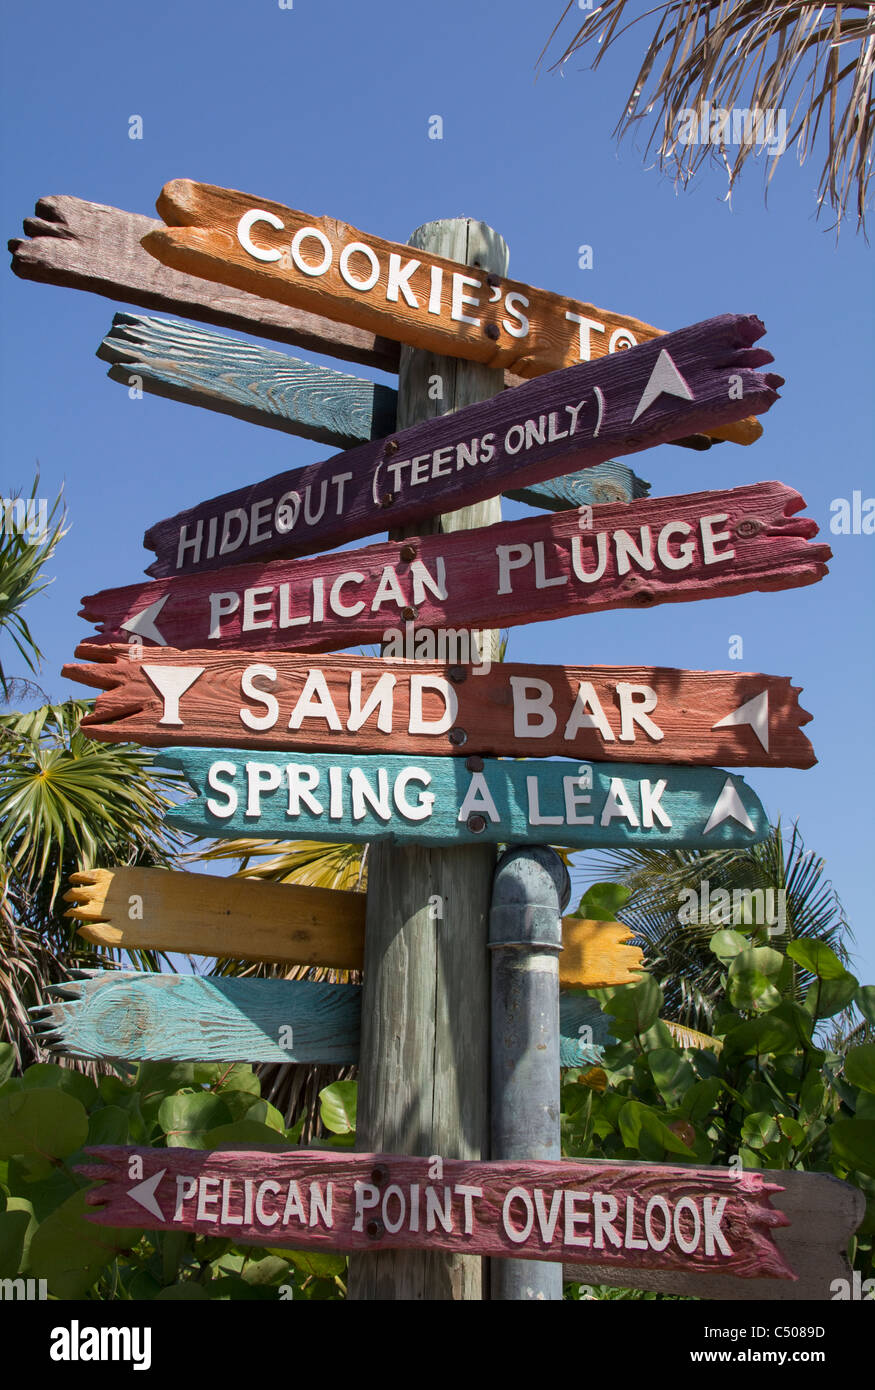 Signpost, Castaway Cay, Disney Cruise Line's private island in the Bahamas. - Stock Image